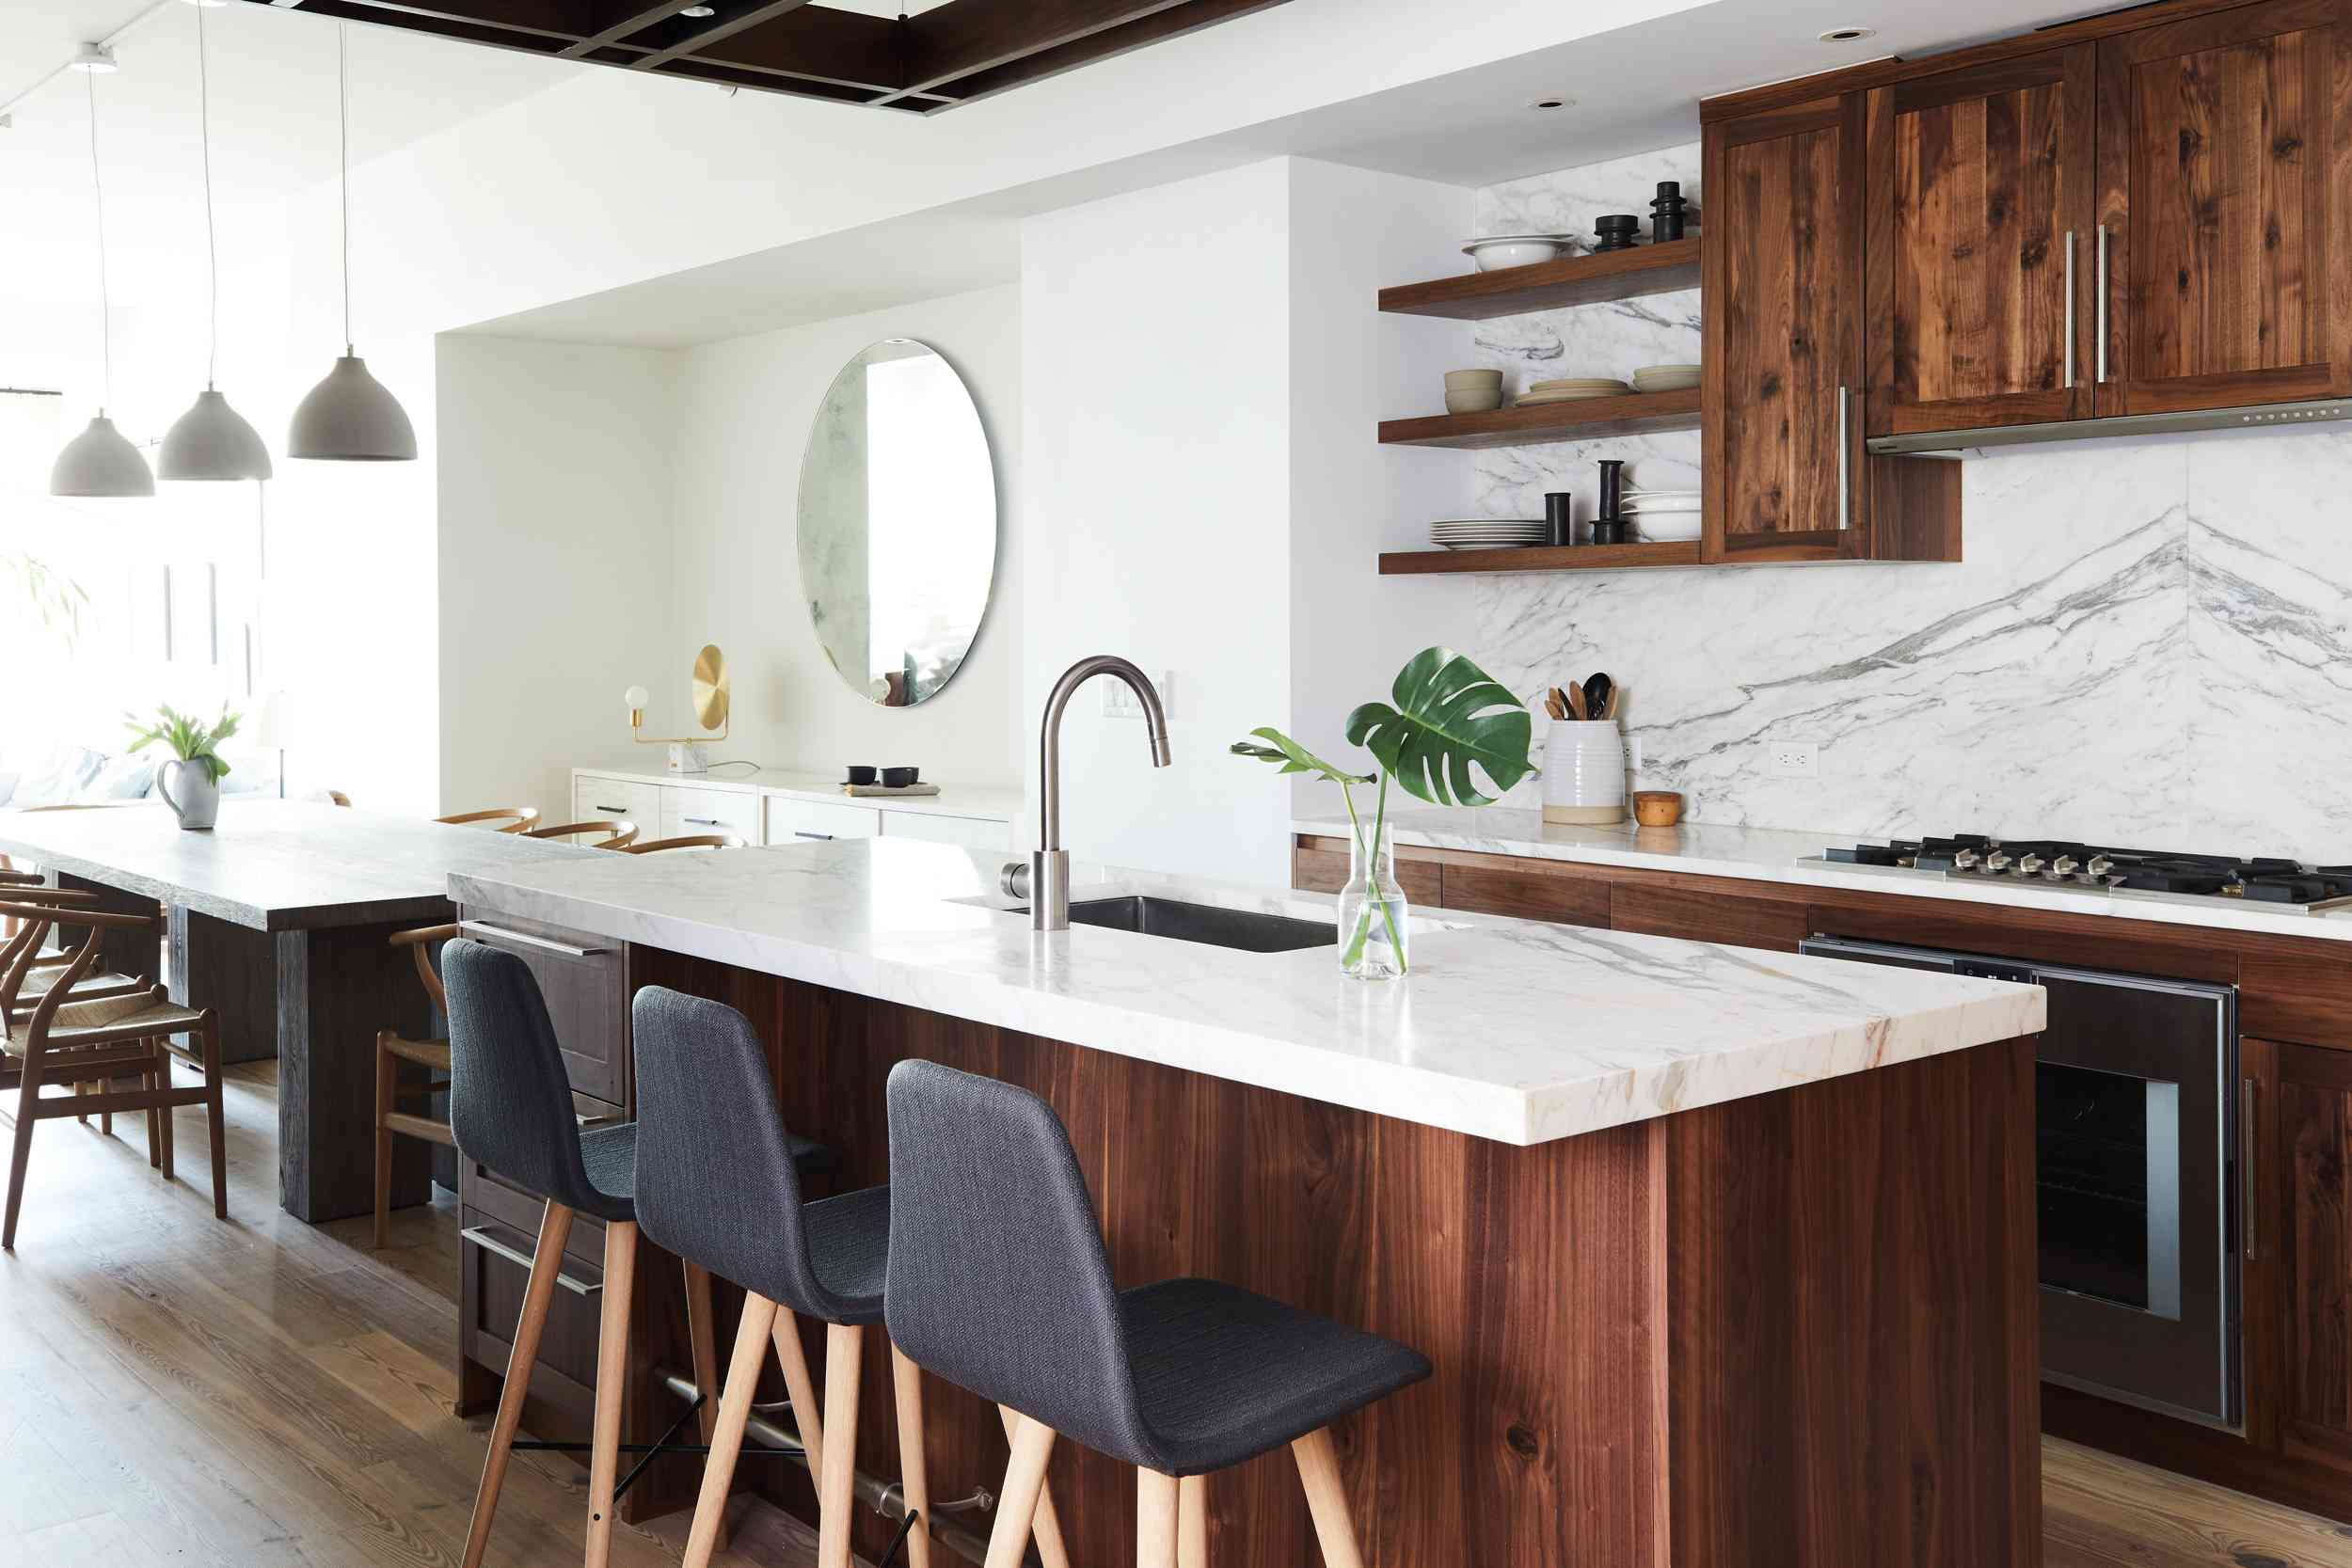 An open-concept kitchen with dark-stained wood cabinets